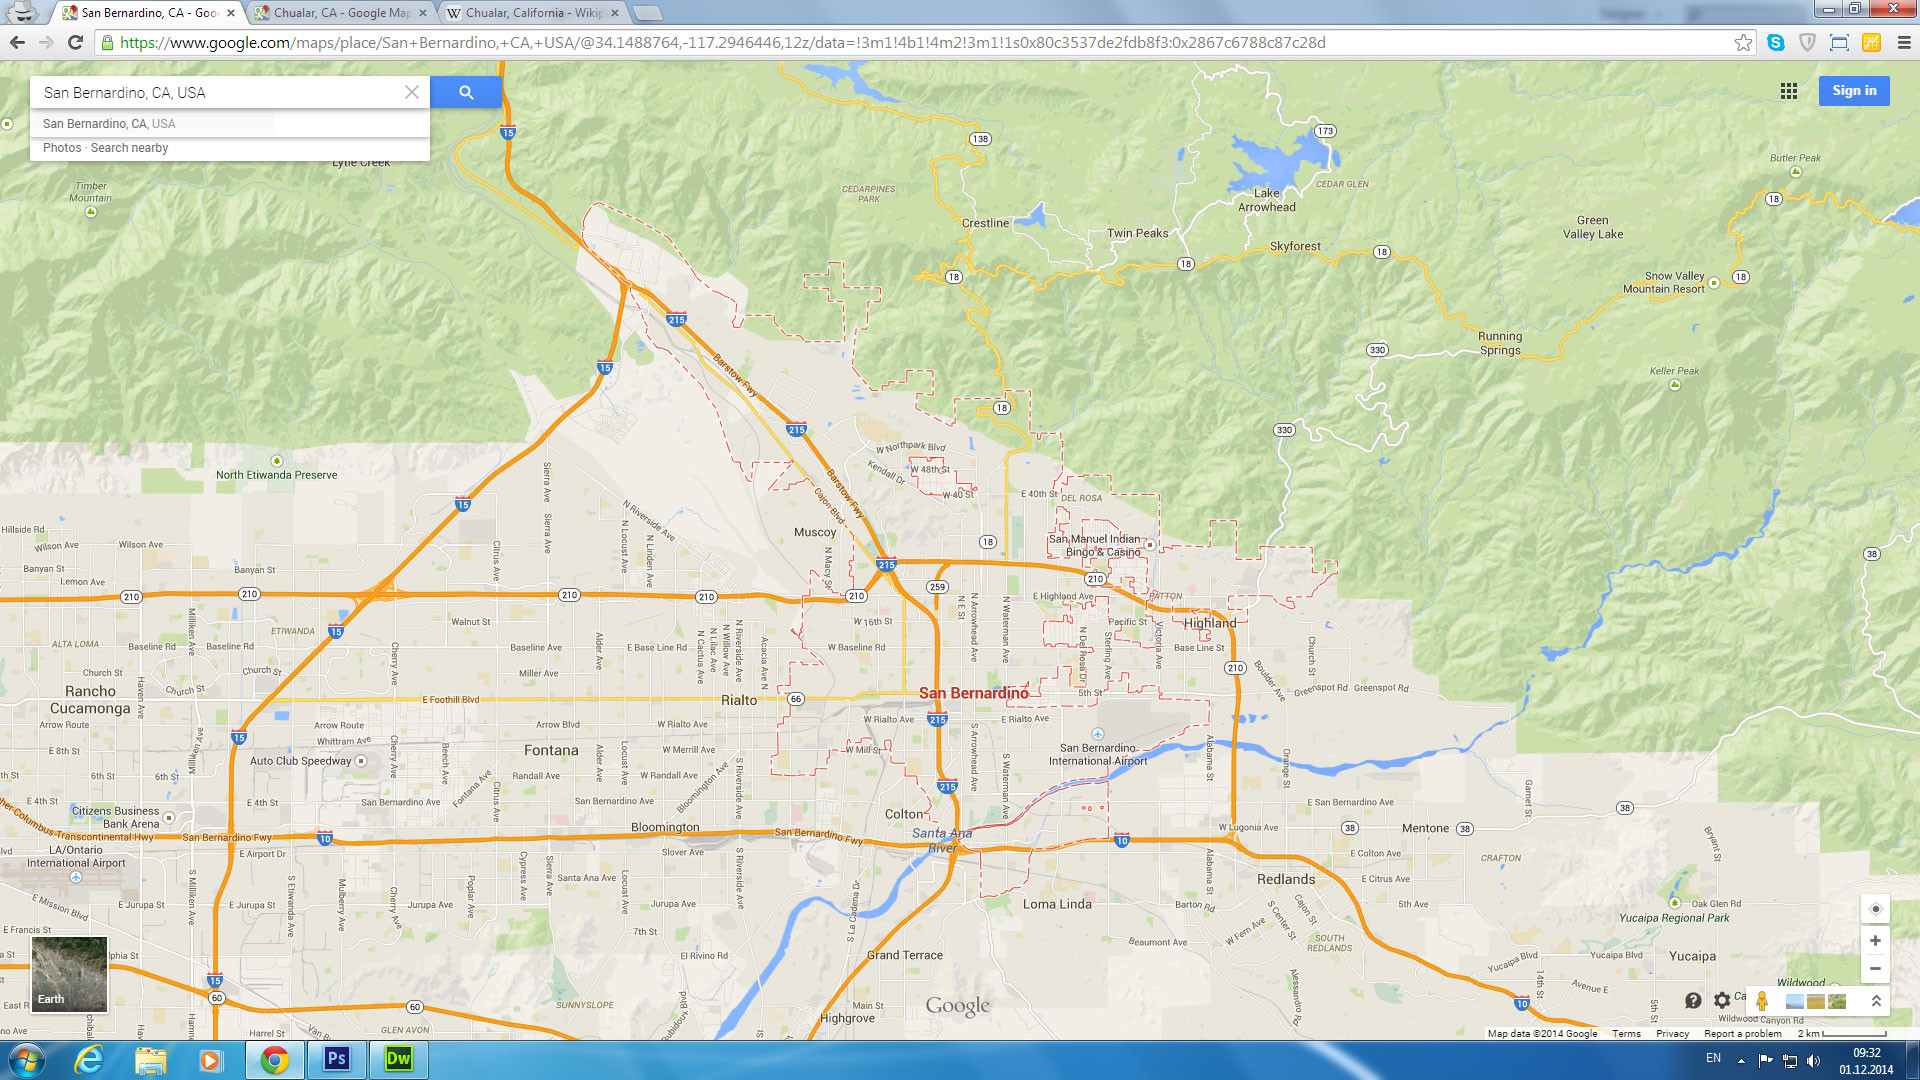 Google Maps California Cities Detailed San Bernardino California Map - Google Maps California Cities